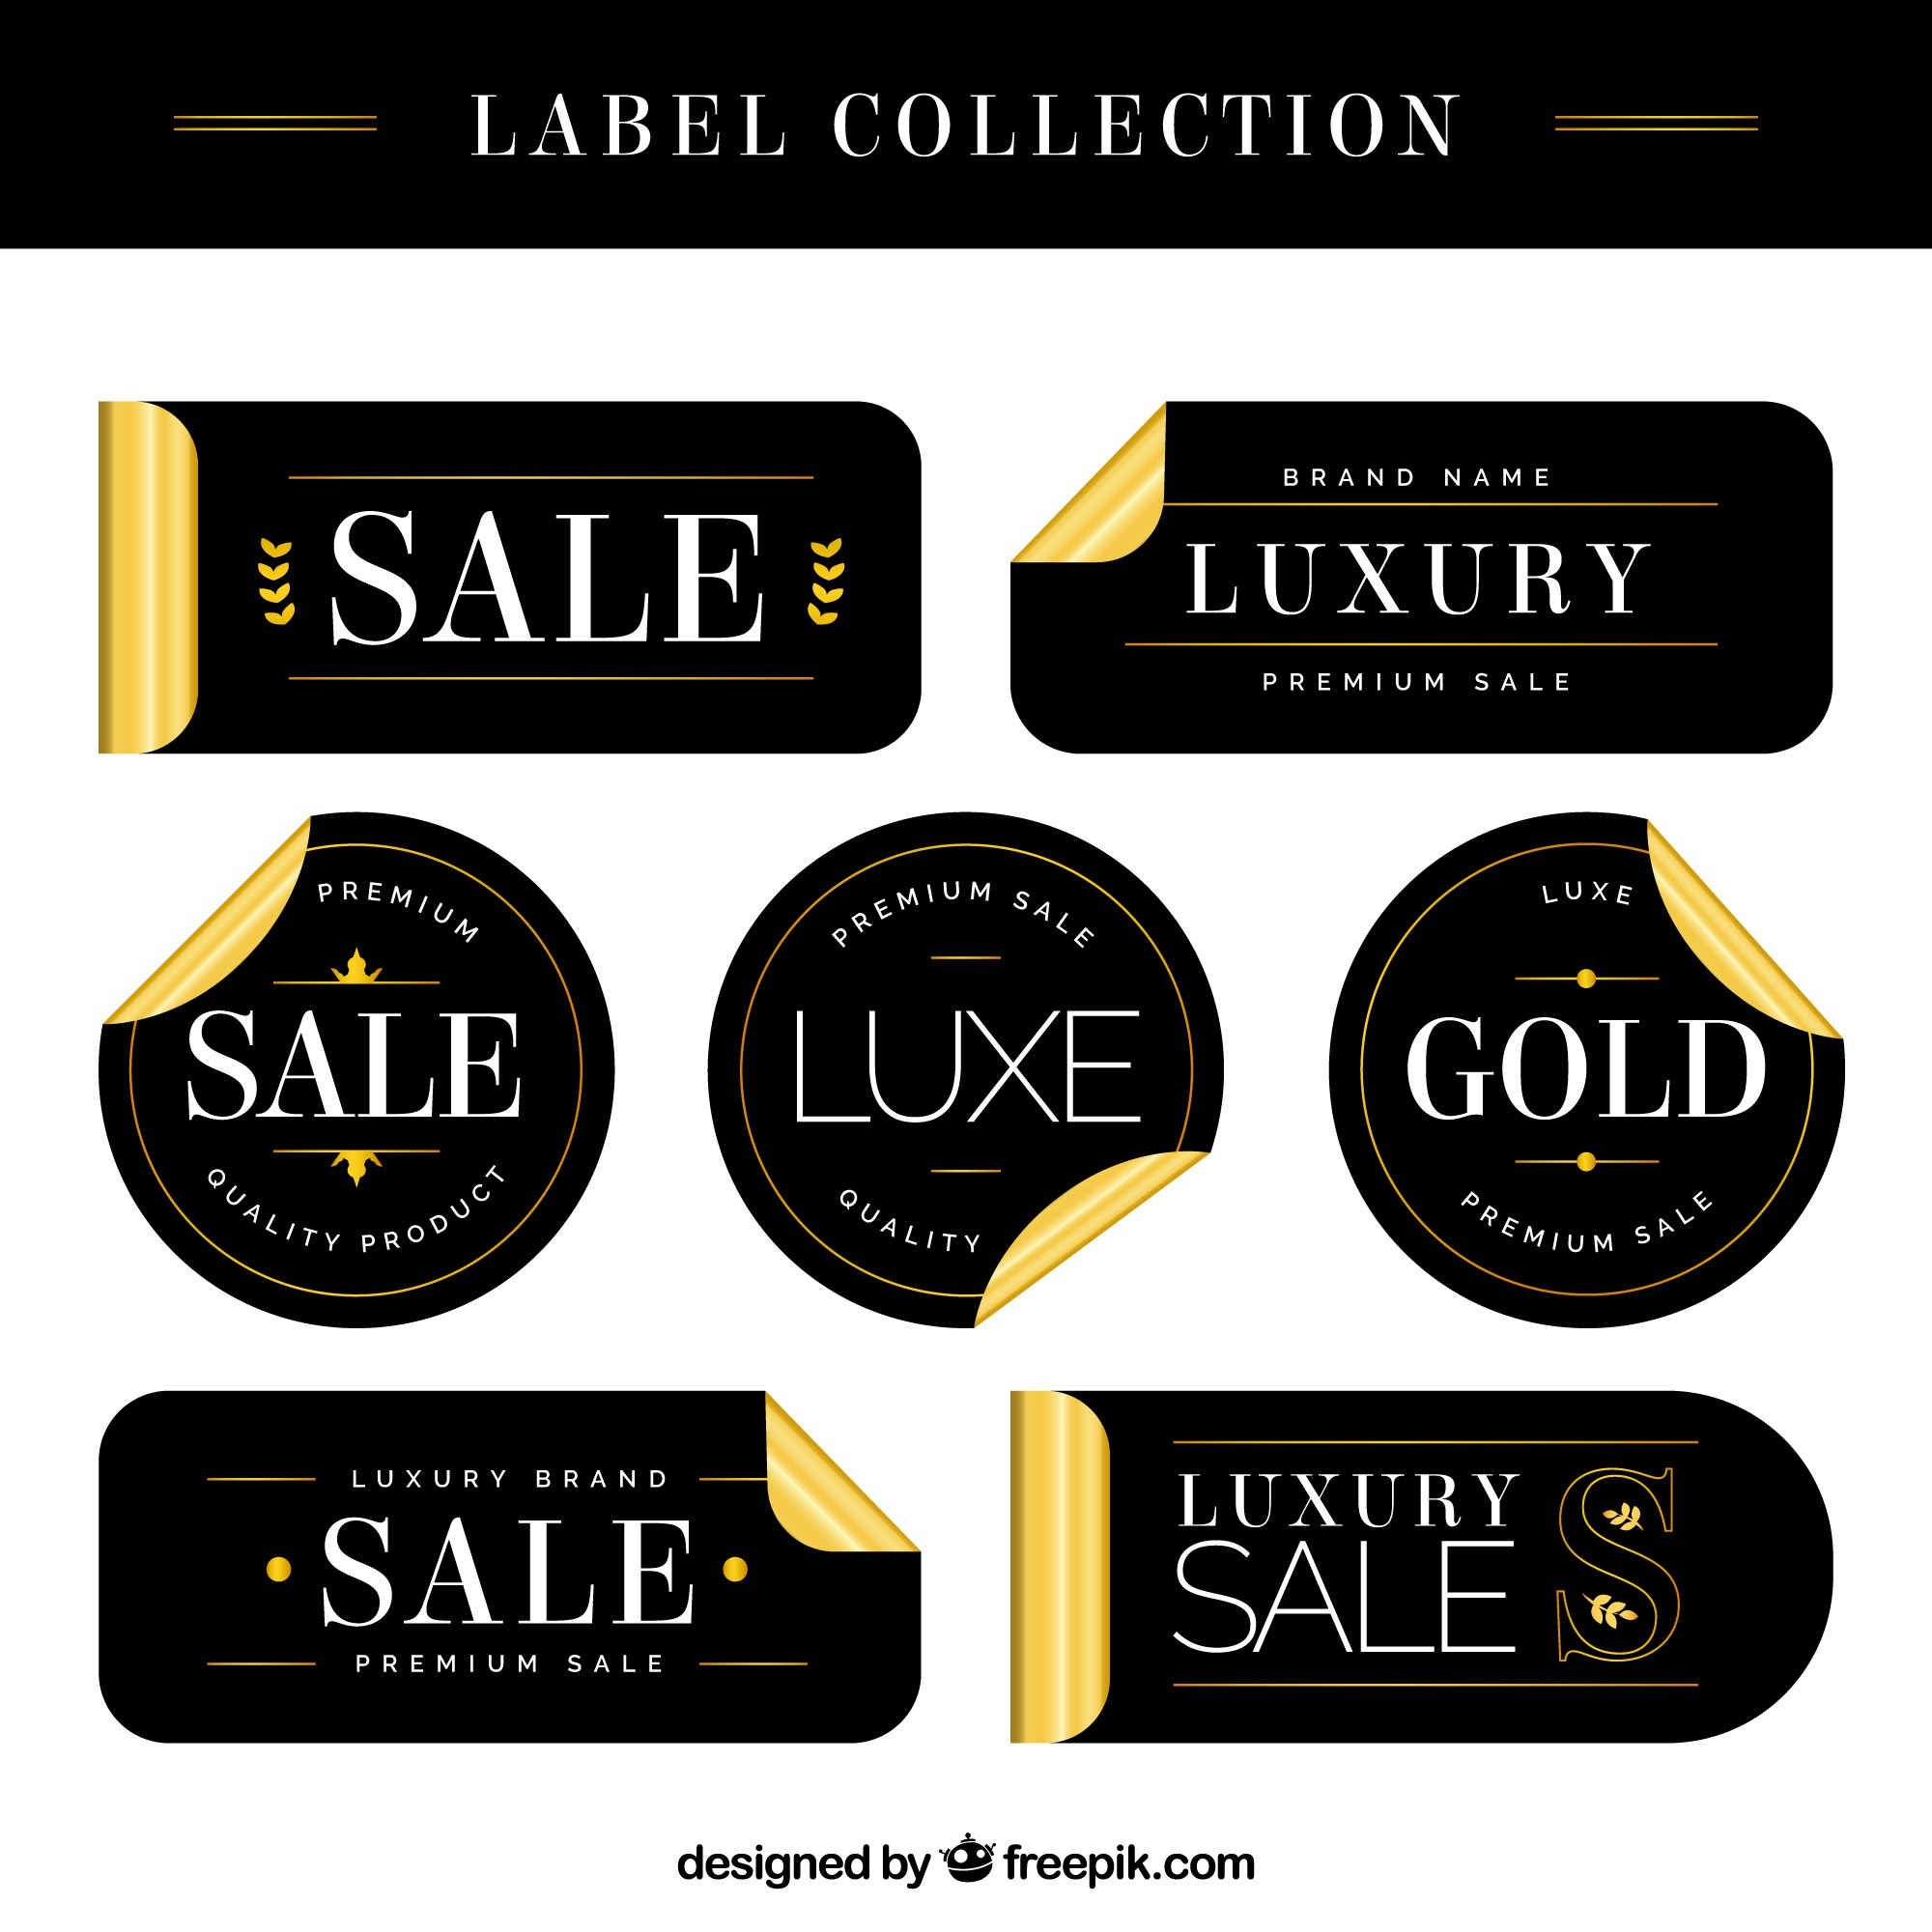 Luxury sale labels with golden details